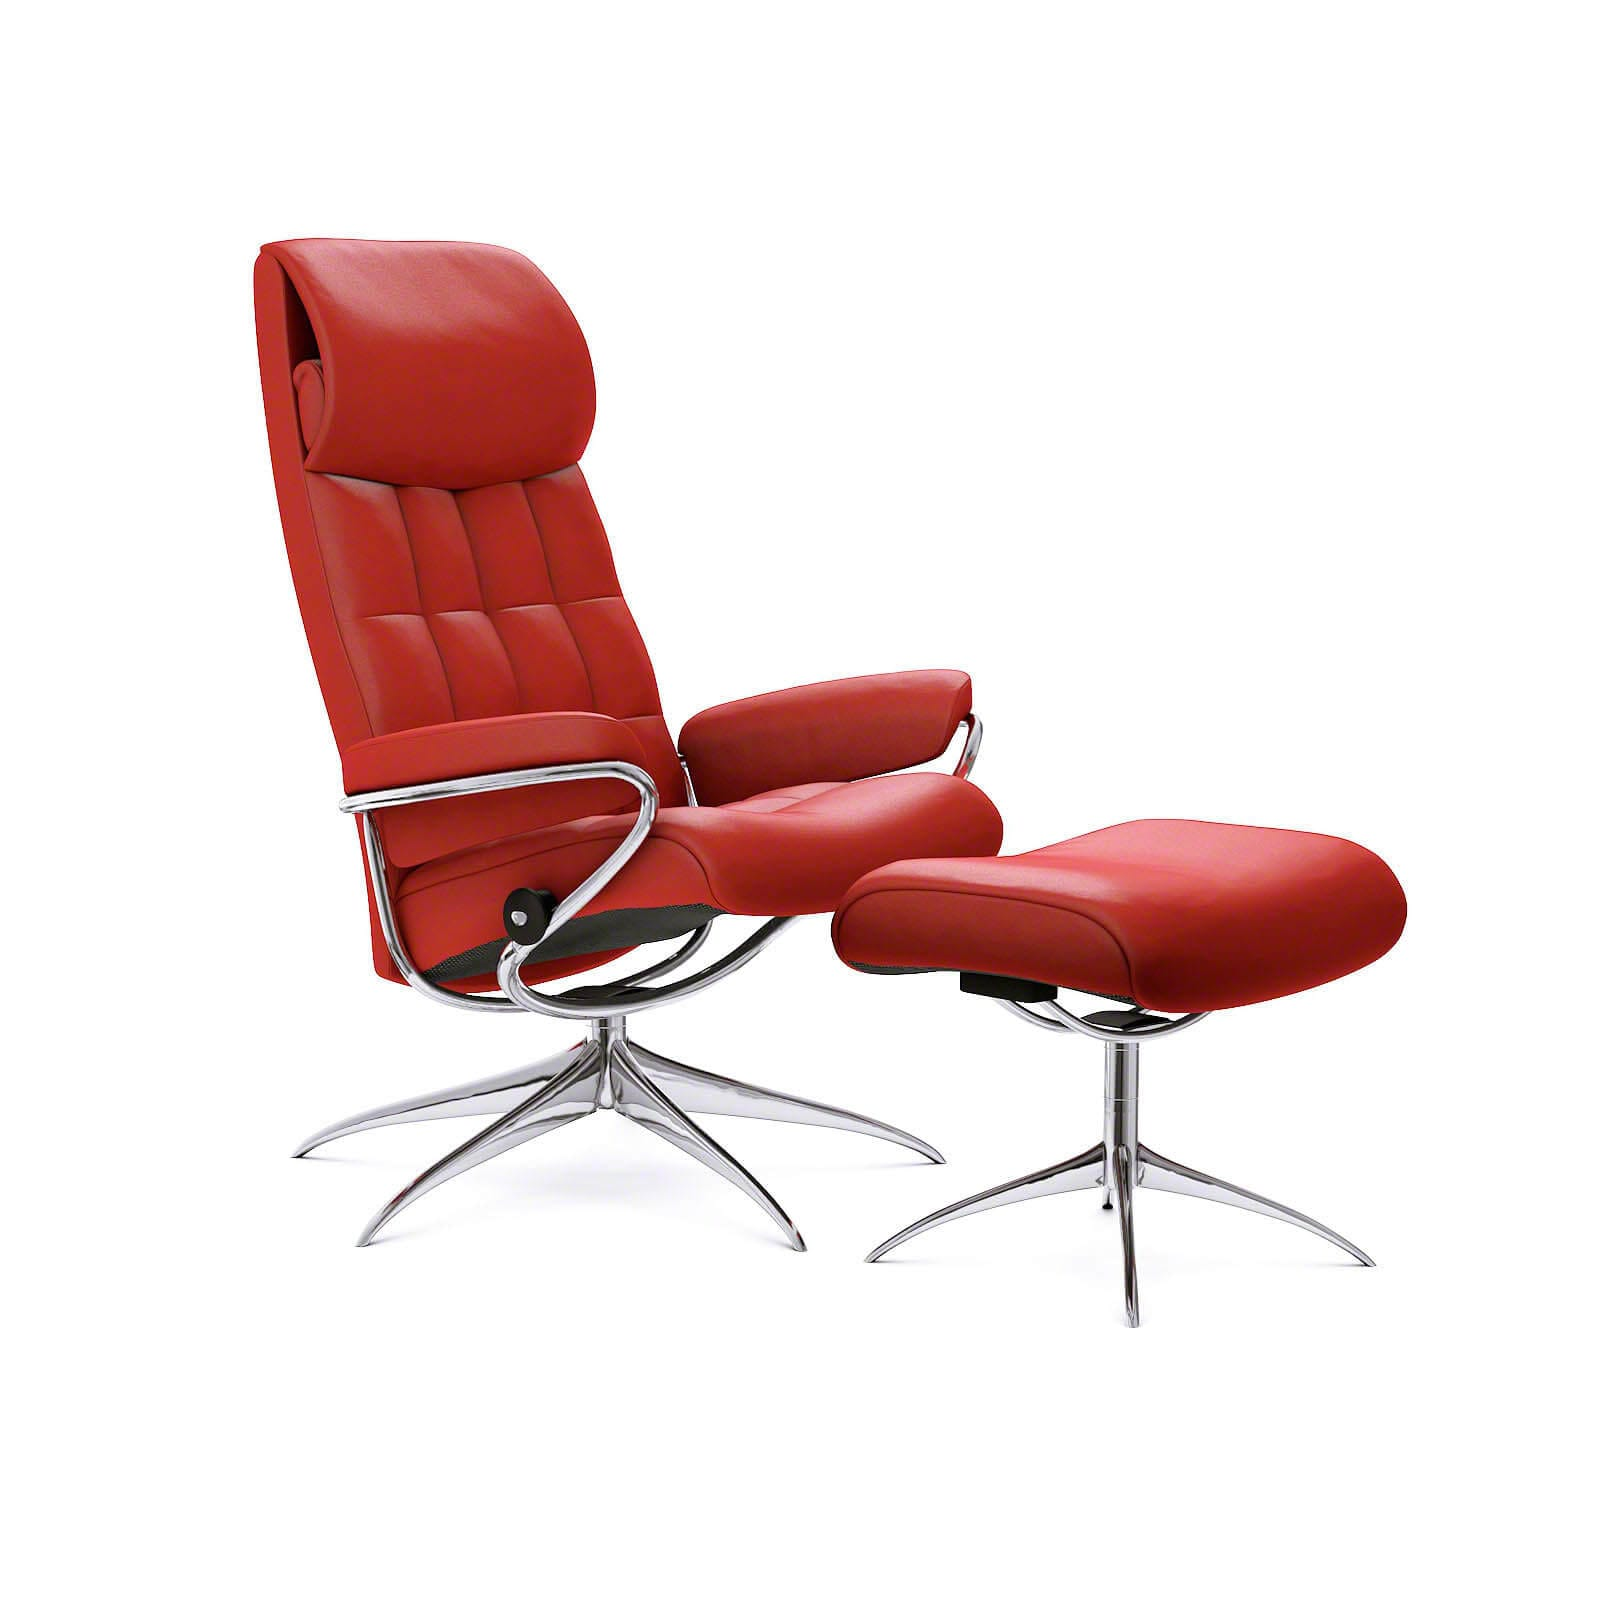 Stressless Sessel Berlin Stressless London Sessel Mit Hoher Lehne Lederfarbe Chilli Red